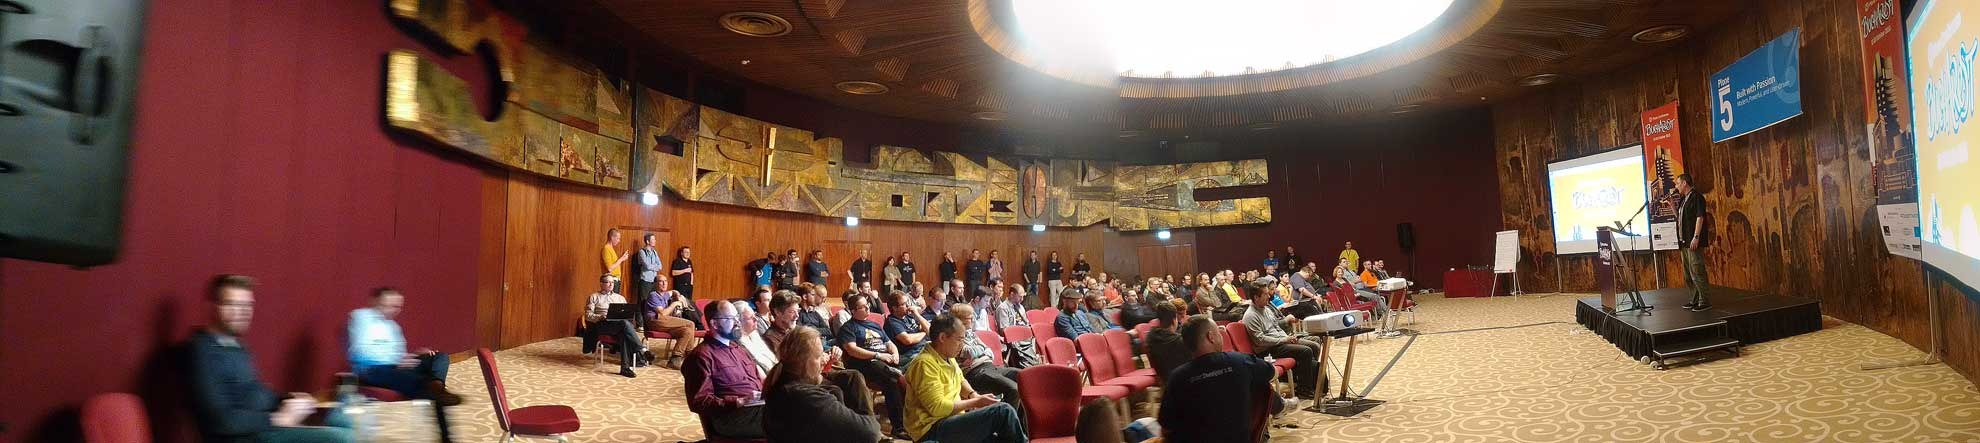 Plone Conference 2015 Bucharest – Great Hall